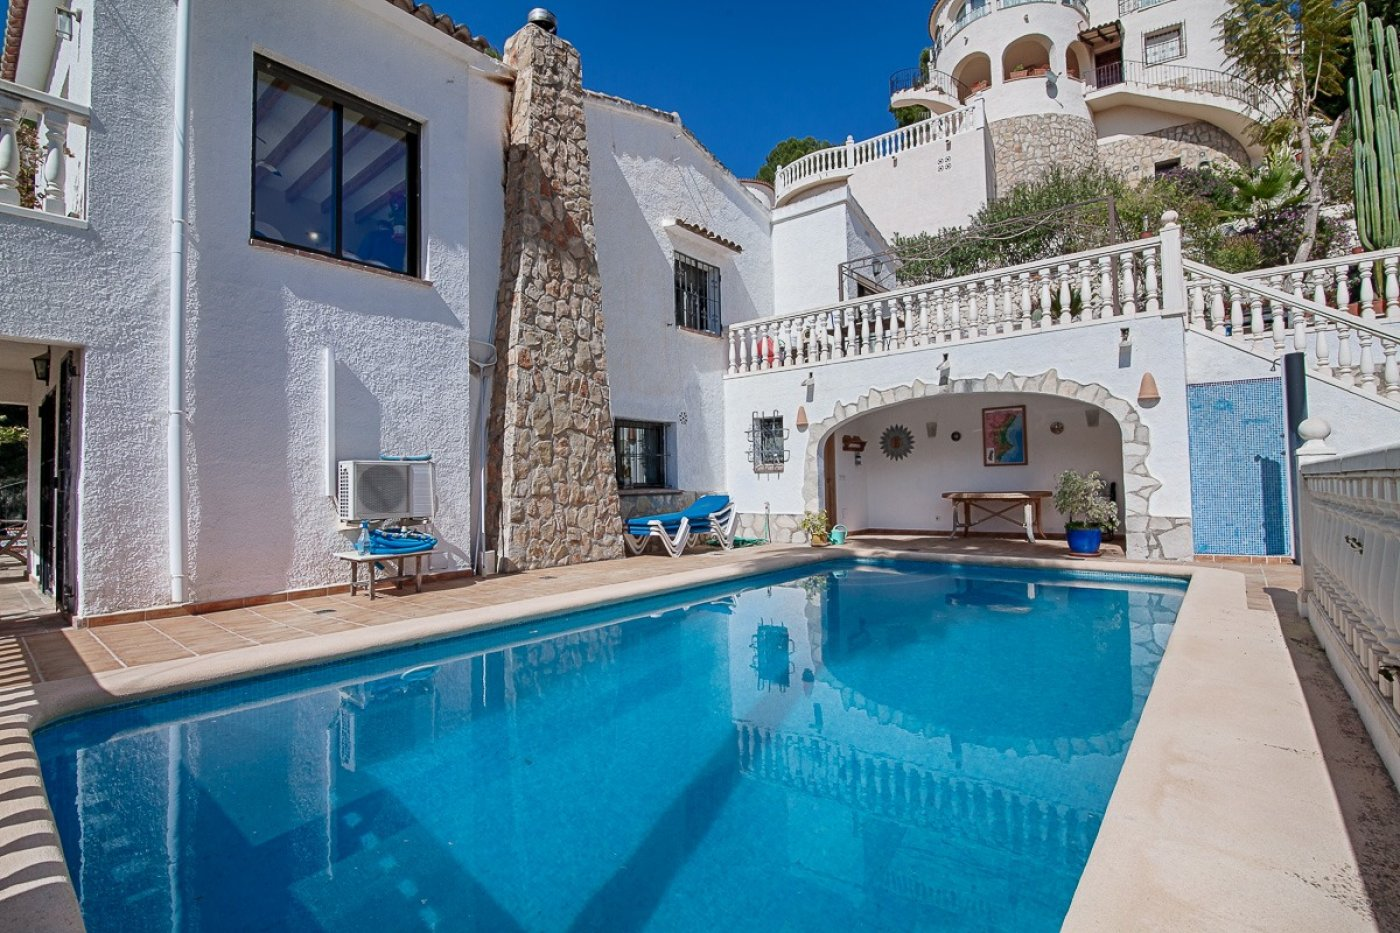 Villa - Ready To Move And Live - Montemar - Benissa